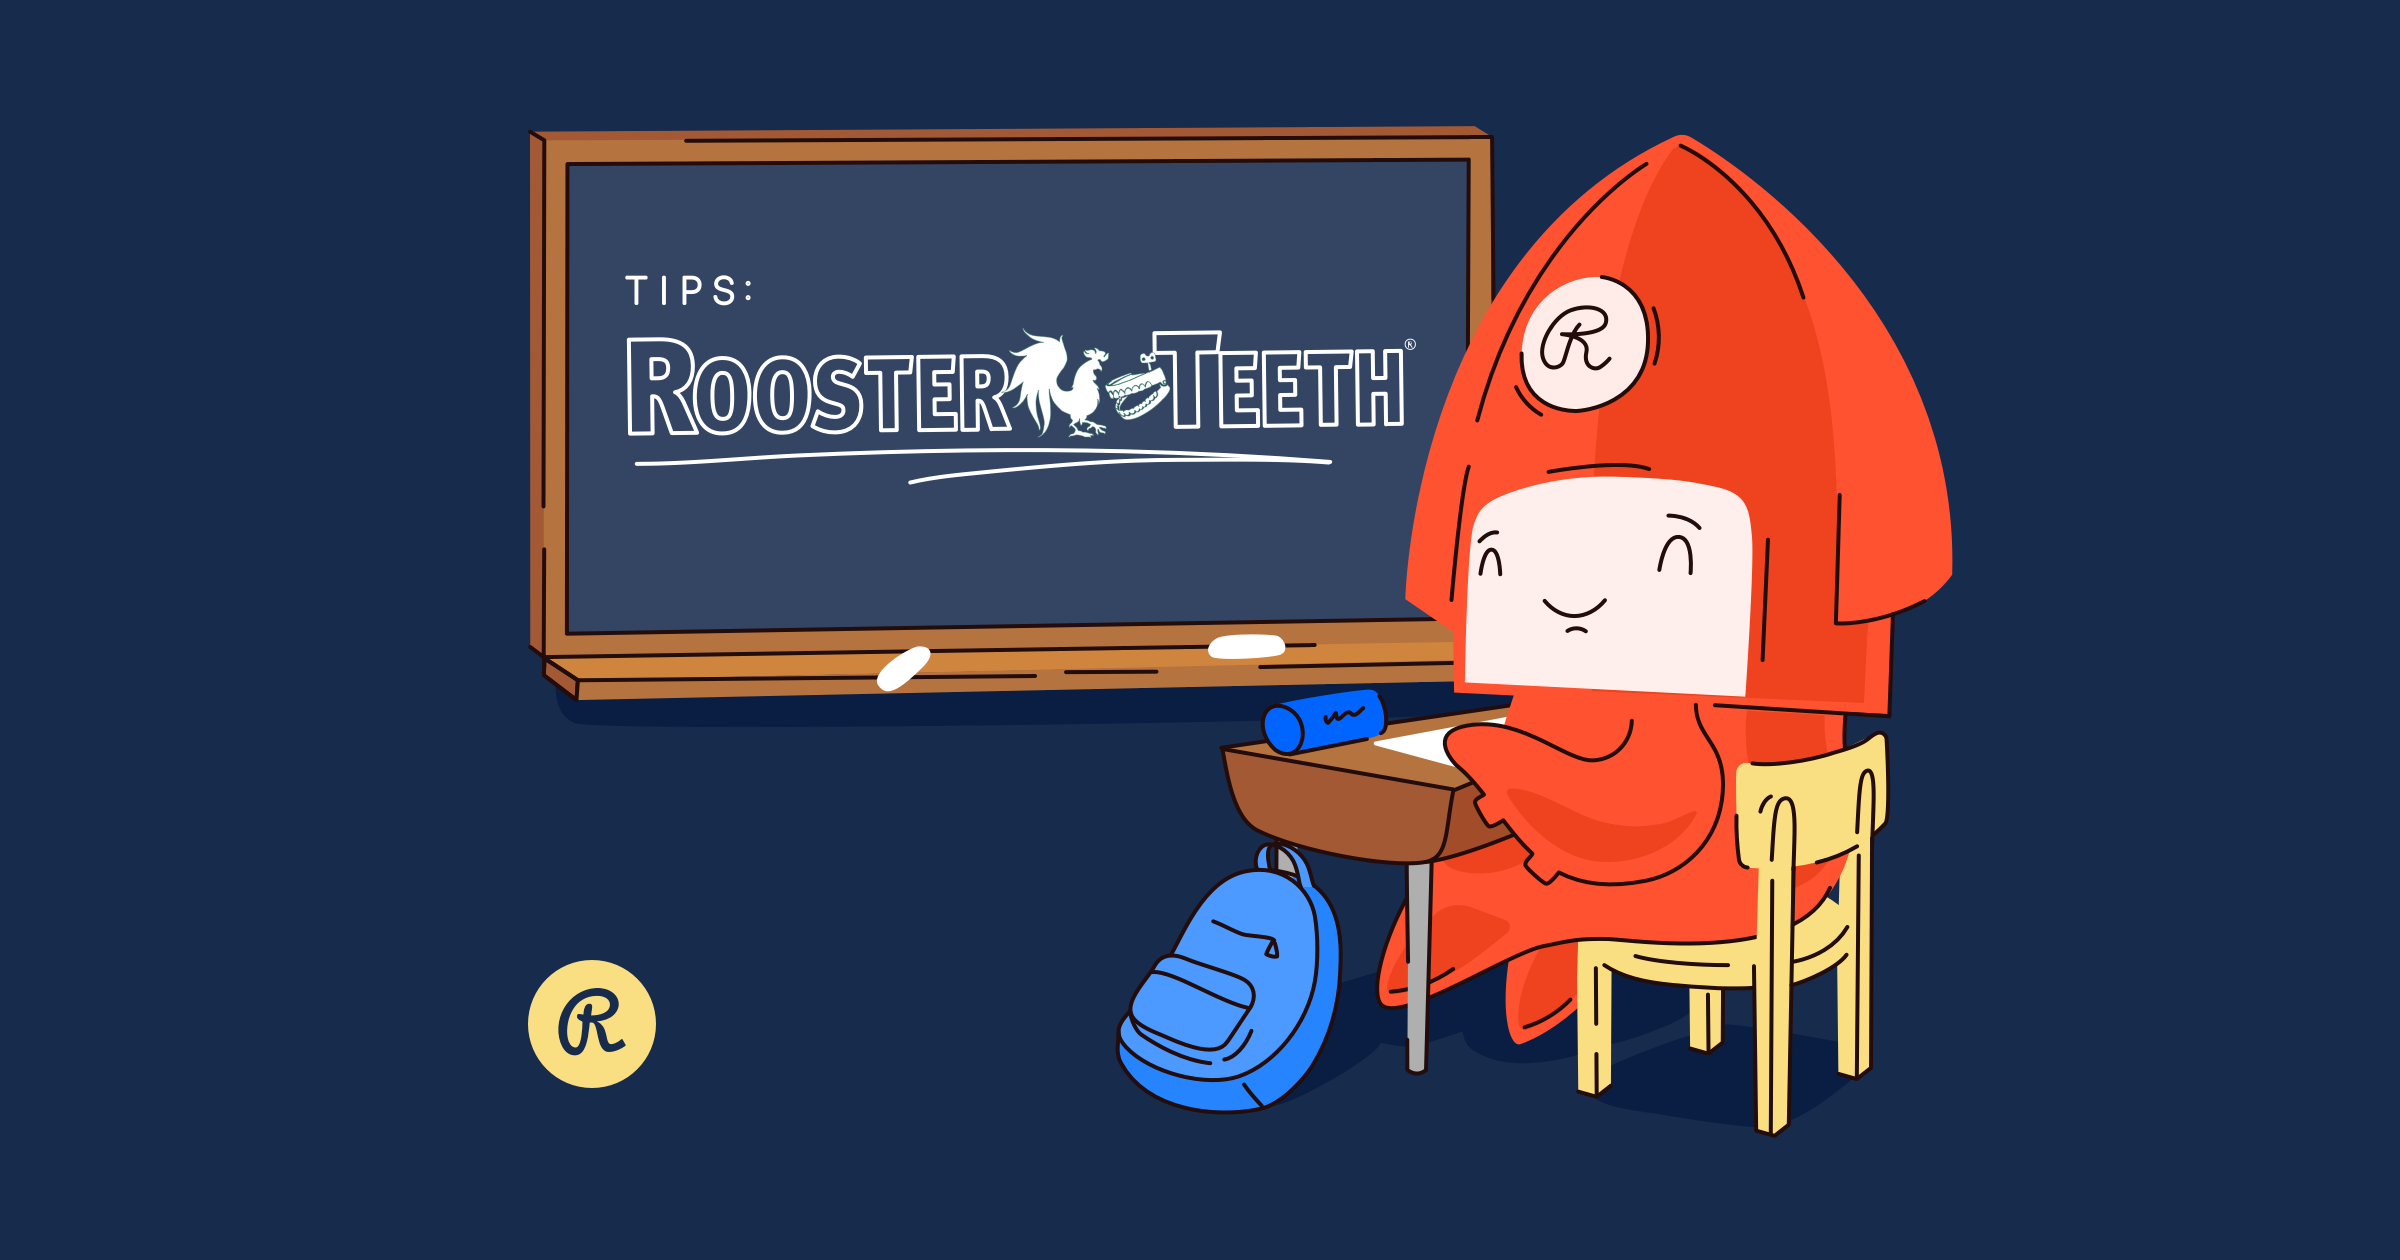 Live streaming tips from Rooster Teeth